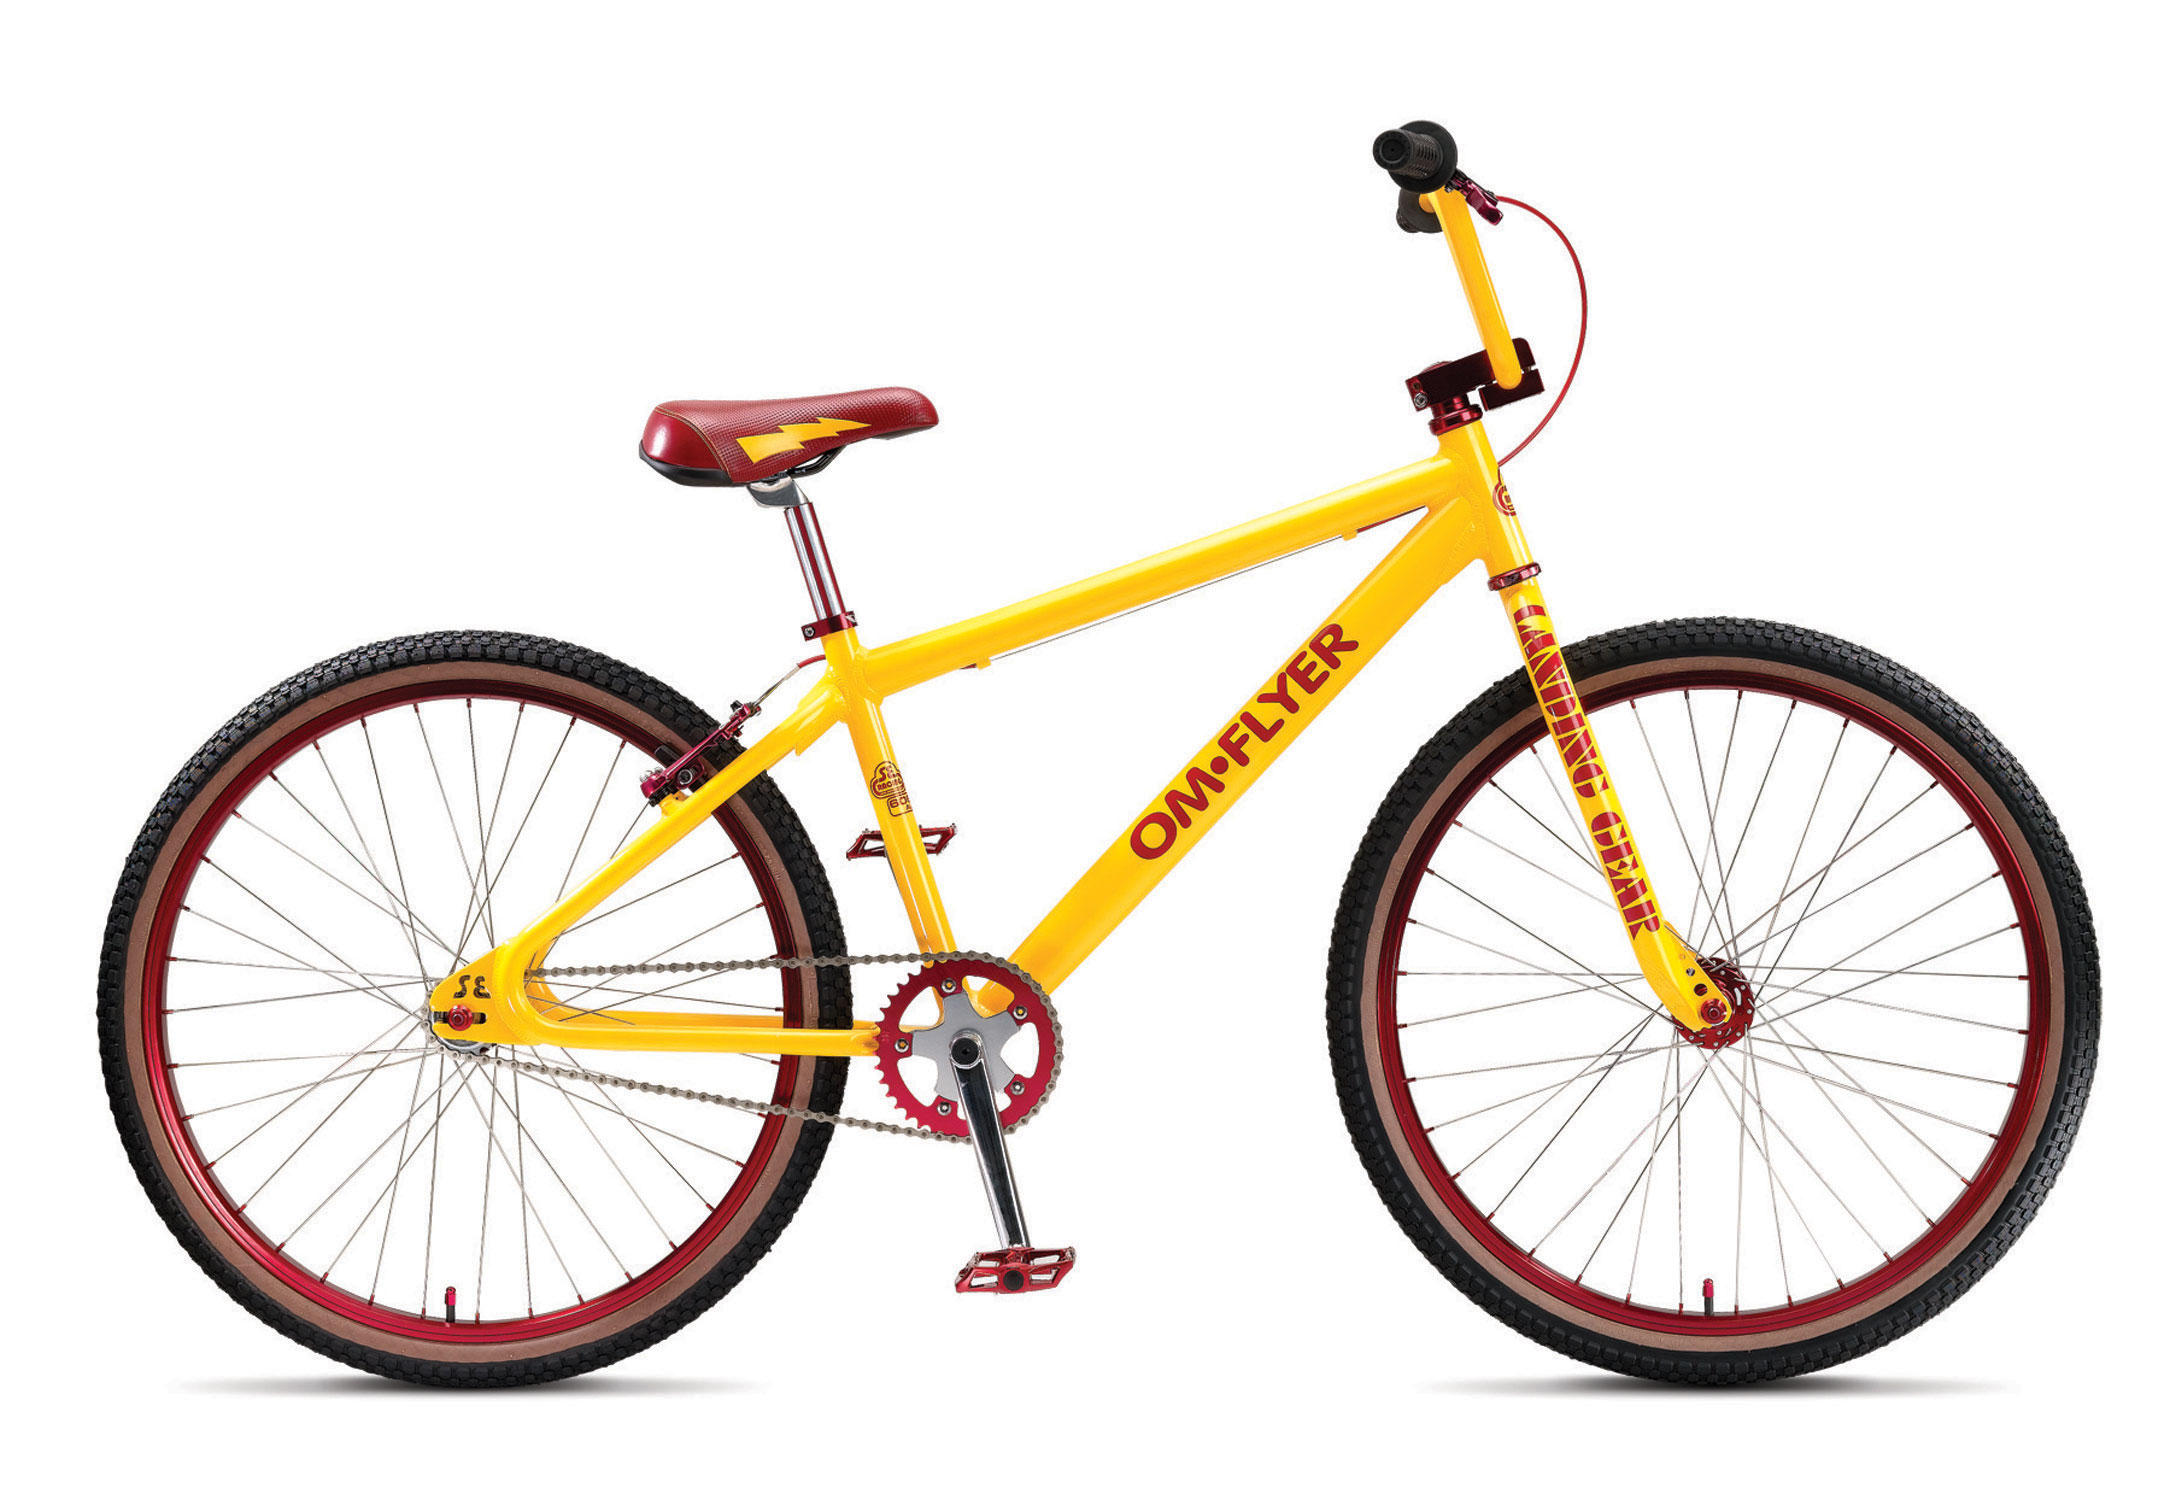 "BMX Key Features of the SE OM Flyer Single Bike: FRAME 6061 Aluminum Tubing, Looptail Rear End, Retro dropouts FORK 100% CR-MO Landing Gear HEADSET Tange Alloy DX4, 1-1/8"" Threadless HANDLEBARS CR-Mo Power Wing Cruiser Bar, 28"" X 7"" STEM Retro Top Load w/ Engraved SE Logo Top & Bottom, 1-1/8"" Alloy GRIPS S-1E Retro Grip BRAKE LEVER Tektro 313A, 2 Finger Alloy BRAKE(S) Tektro 839AL V-Brake SEAT SE Flyer Seat SEAT POST Retro Fluted Micro-Adjust, Aluminum 27.2 SEAT CLAMP SE Racing Alloy CRANKSET SE 3-pc Cr-Mo, 180mm, 48 Spline Sealed American, 39T Alloy CHAIN KMC Z30 Silver PEDAL X-Pedo Low Profile Platform w/ Removable Pins RIM Alex DM24, 36H Double Wall Aluminum, w/ Stainless 14Ga. Spokes FRONT HUB SE Racing High Flange Alloy, Sealed Bearing, Cr-Mo Axle REAR HUB SE Racing High Flange Alloy, Sealed Bearing Alloy, Cr-Mo Axle w/ 17T Freewheel TIRES Kenda K-Rad w/ Skinwalls 1.95 F & R PEGS Nil GYRO Nil EXTRAS Alloy Axle Nuts, Alloy Valve Caps WEIGHT 27.2 lbs - $549.95"